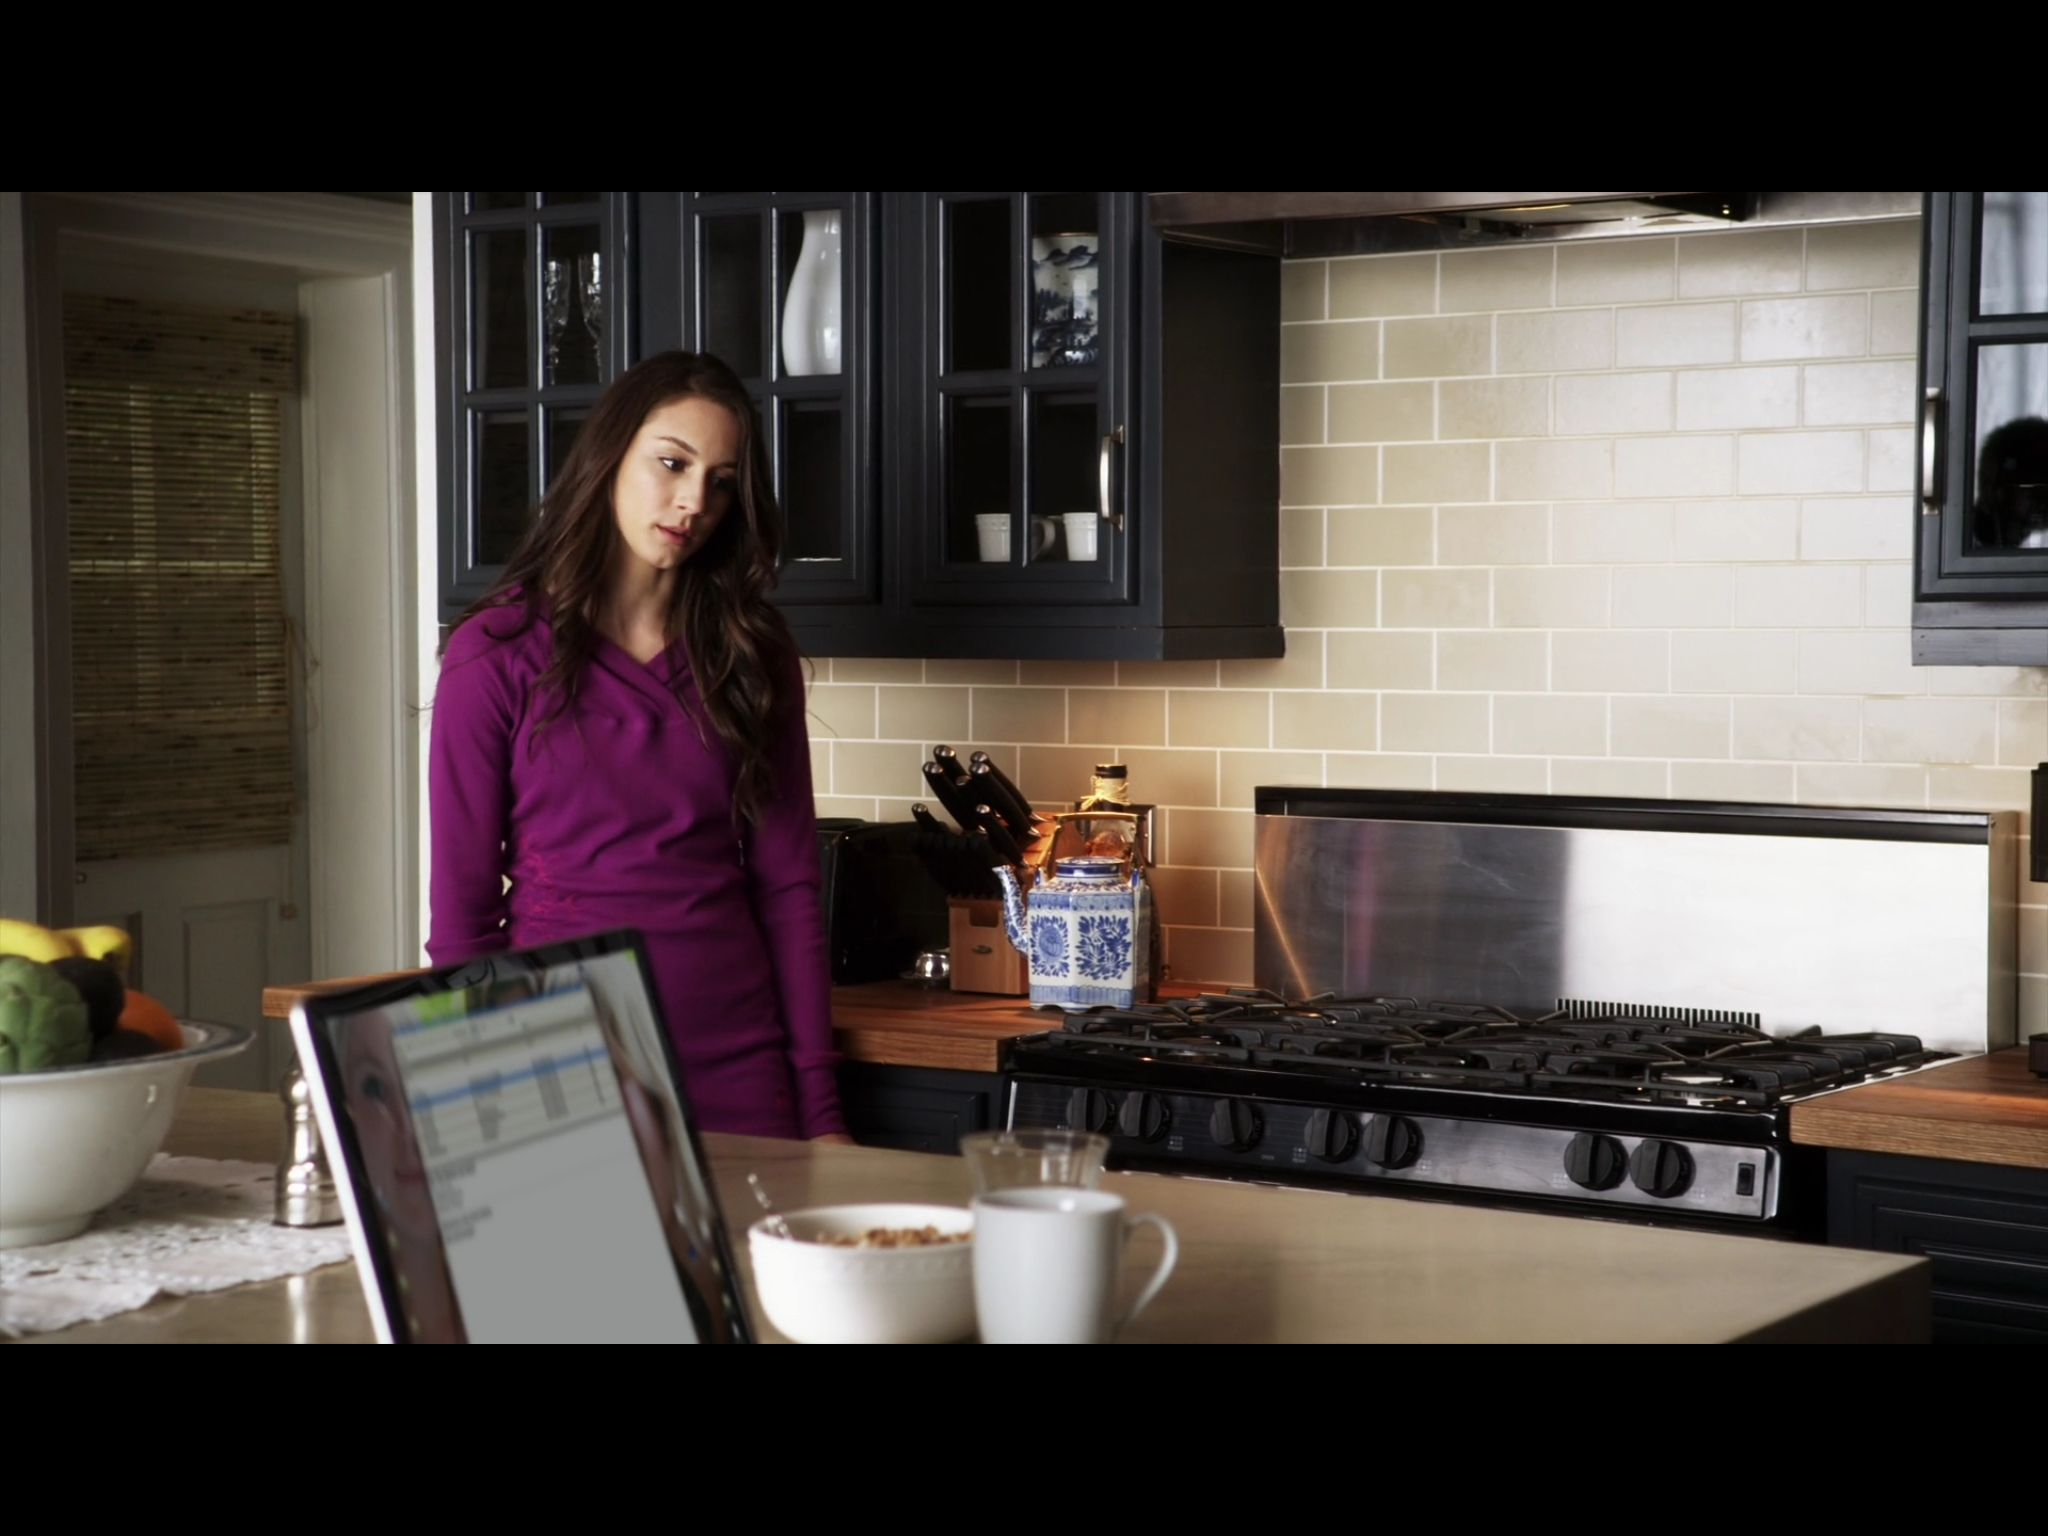 Related spencer hastings living room hanna marin kitchen - 1x3 Spencer At Home In The Kitchen In The Morning With Her Mom And Melissa